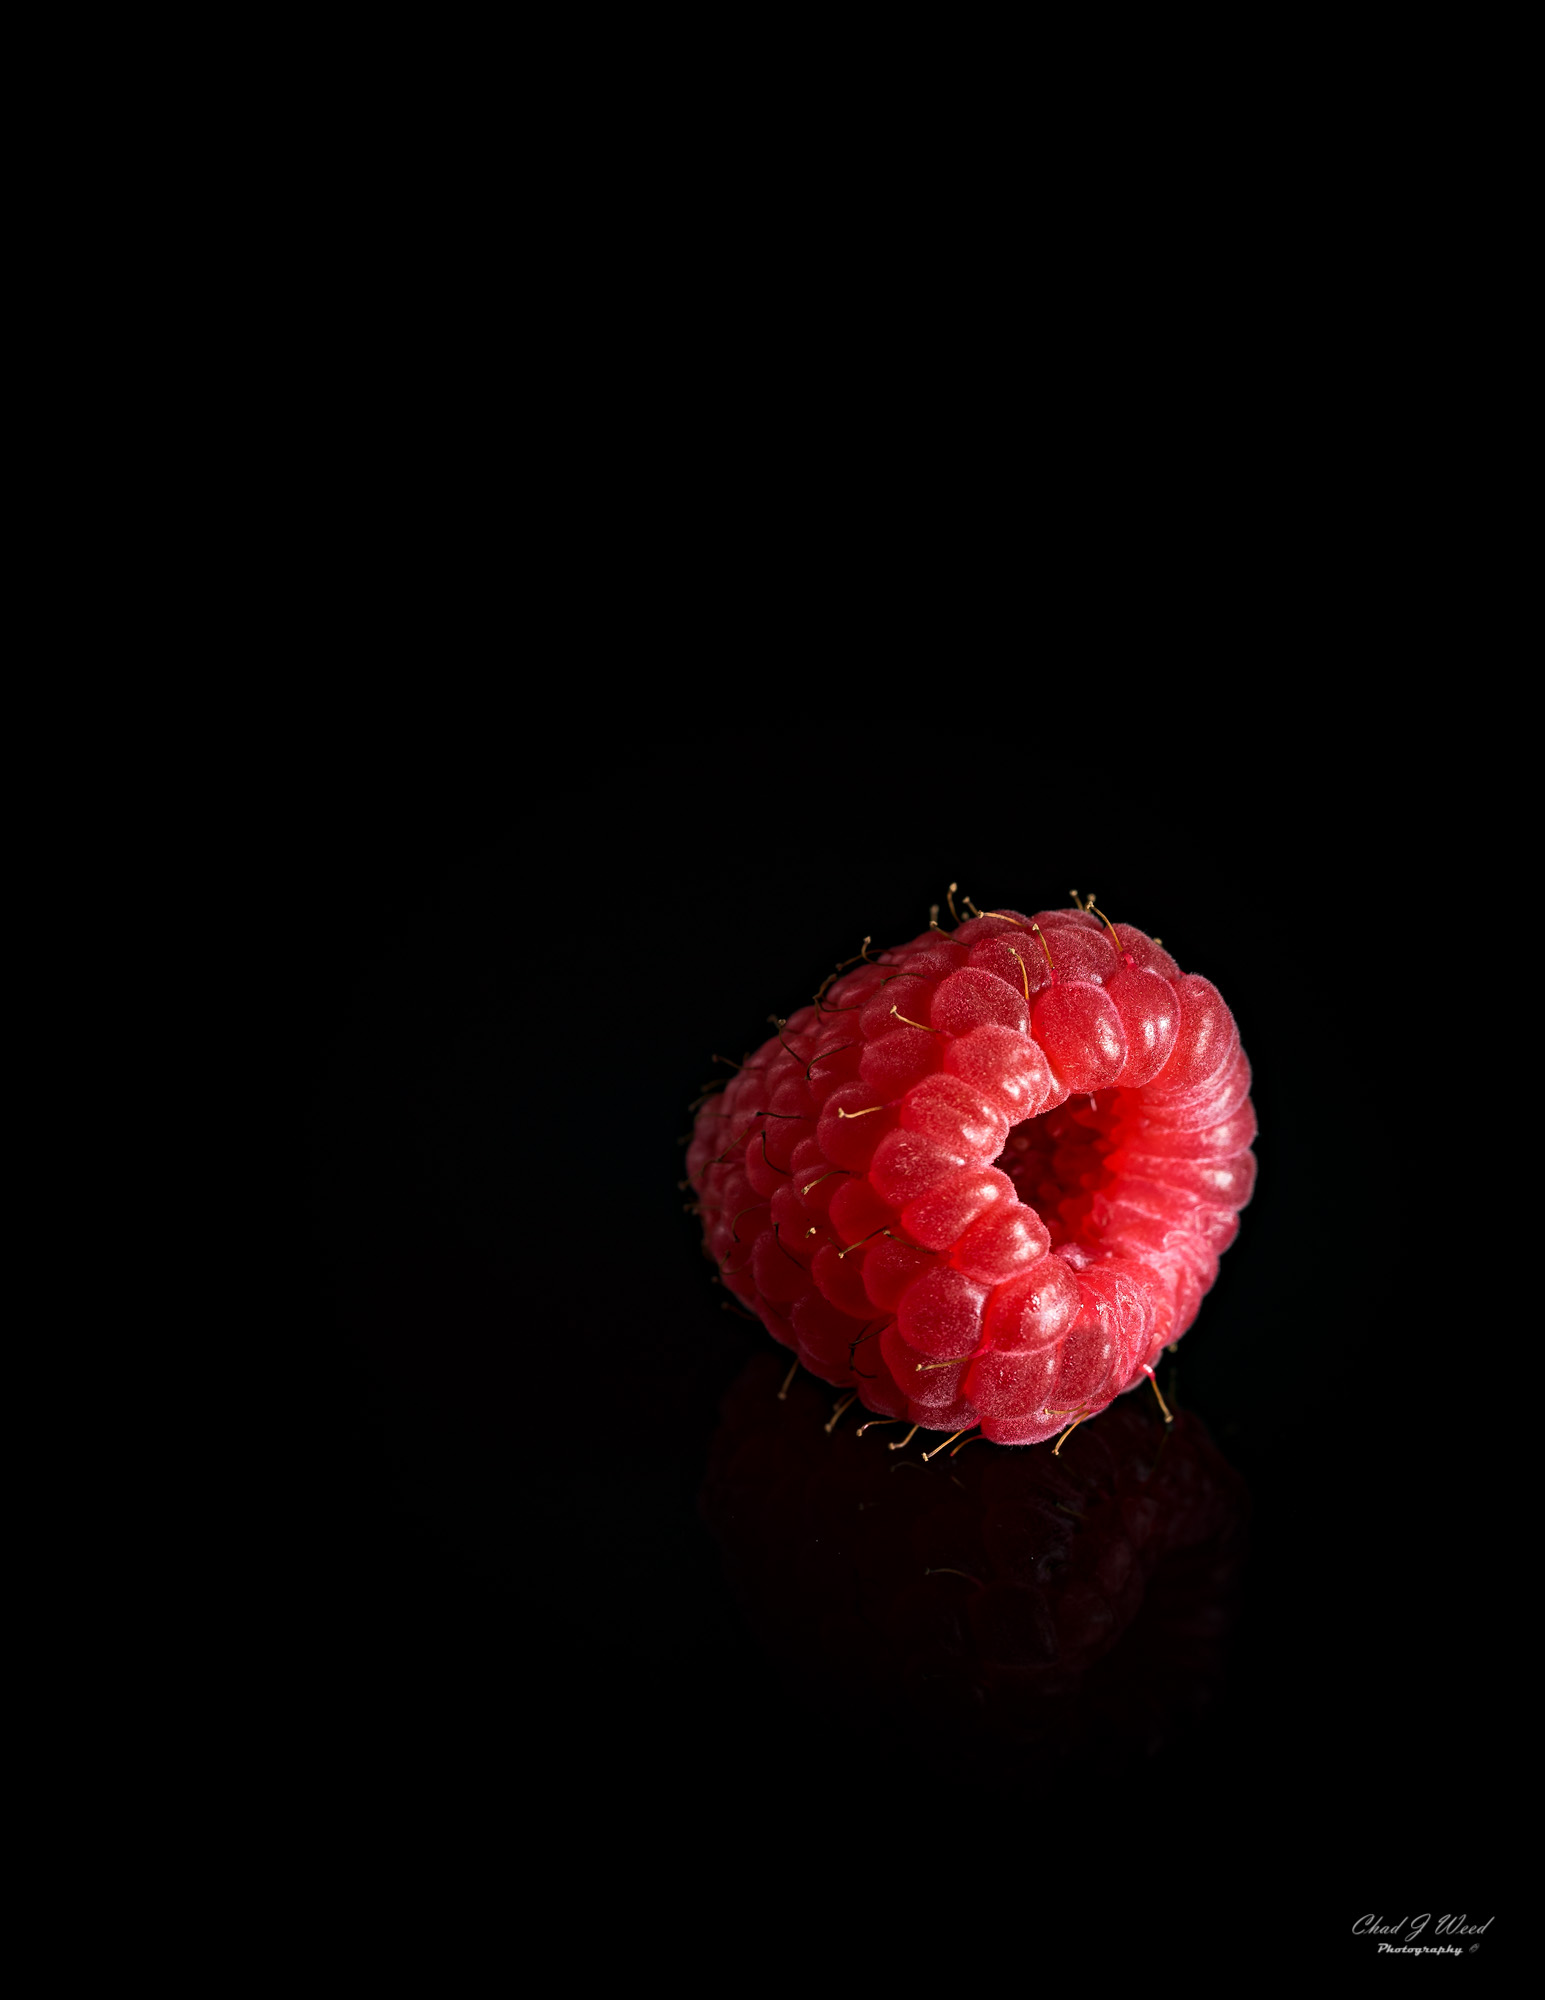 Raspberry by Arizona Commercial Food Photographer Chad J Weed